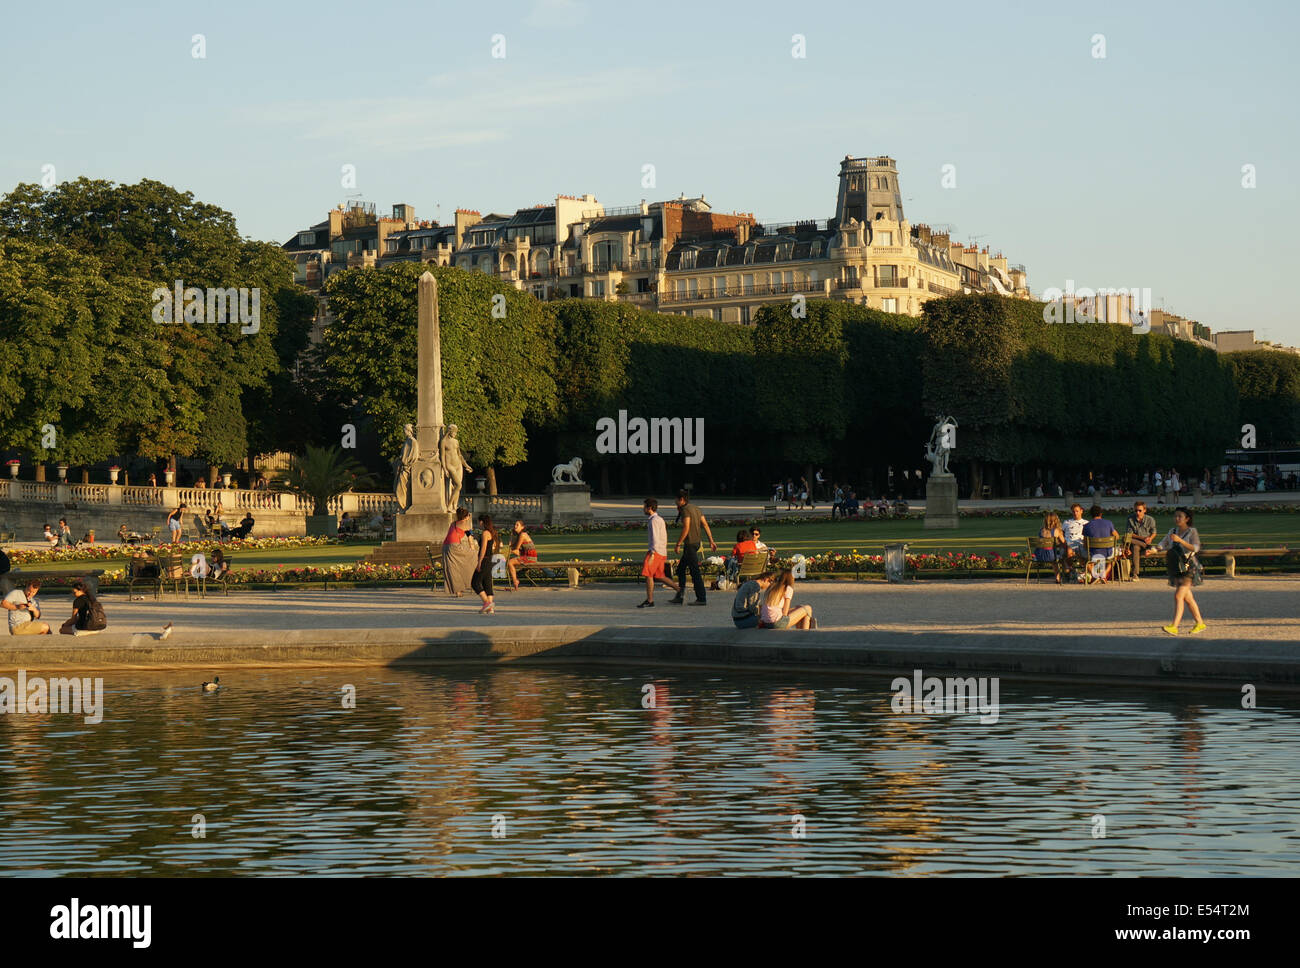 Summer shadows at Jardin du Luxembourg sunset, diverse tourists, Parisians relaxing in chairs reading, walking reflected - Stock Image